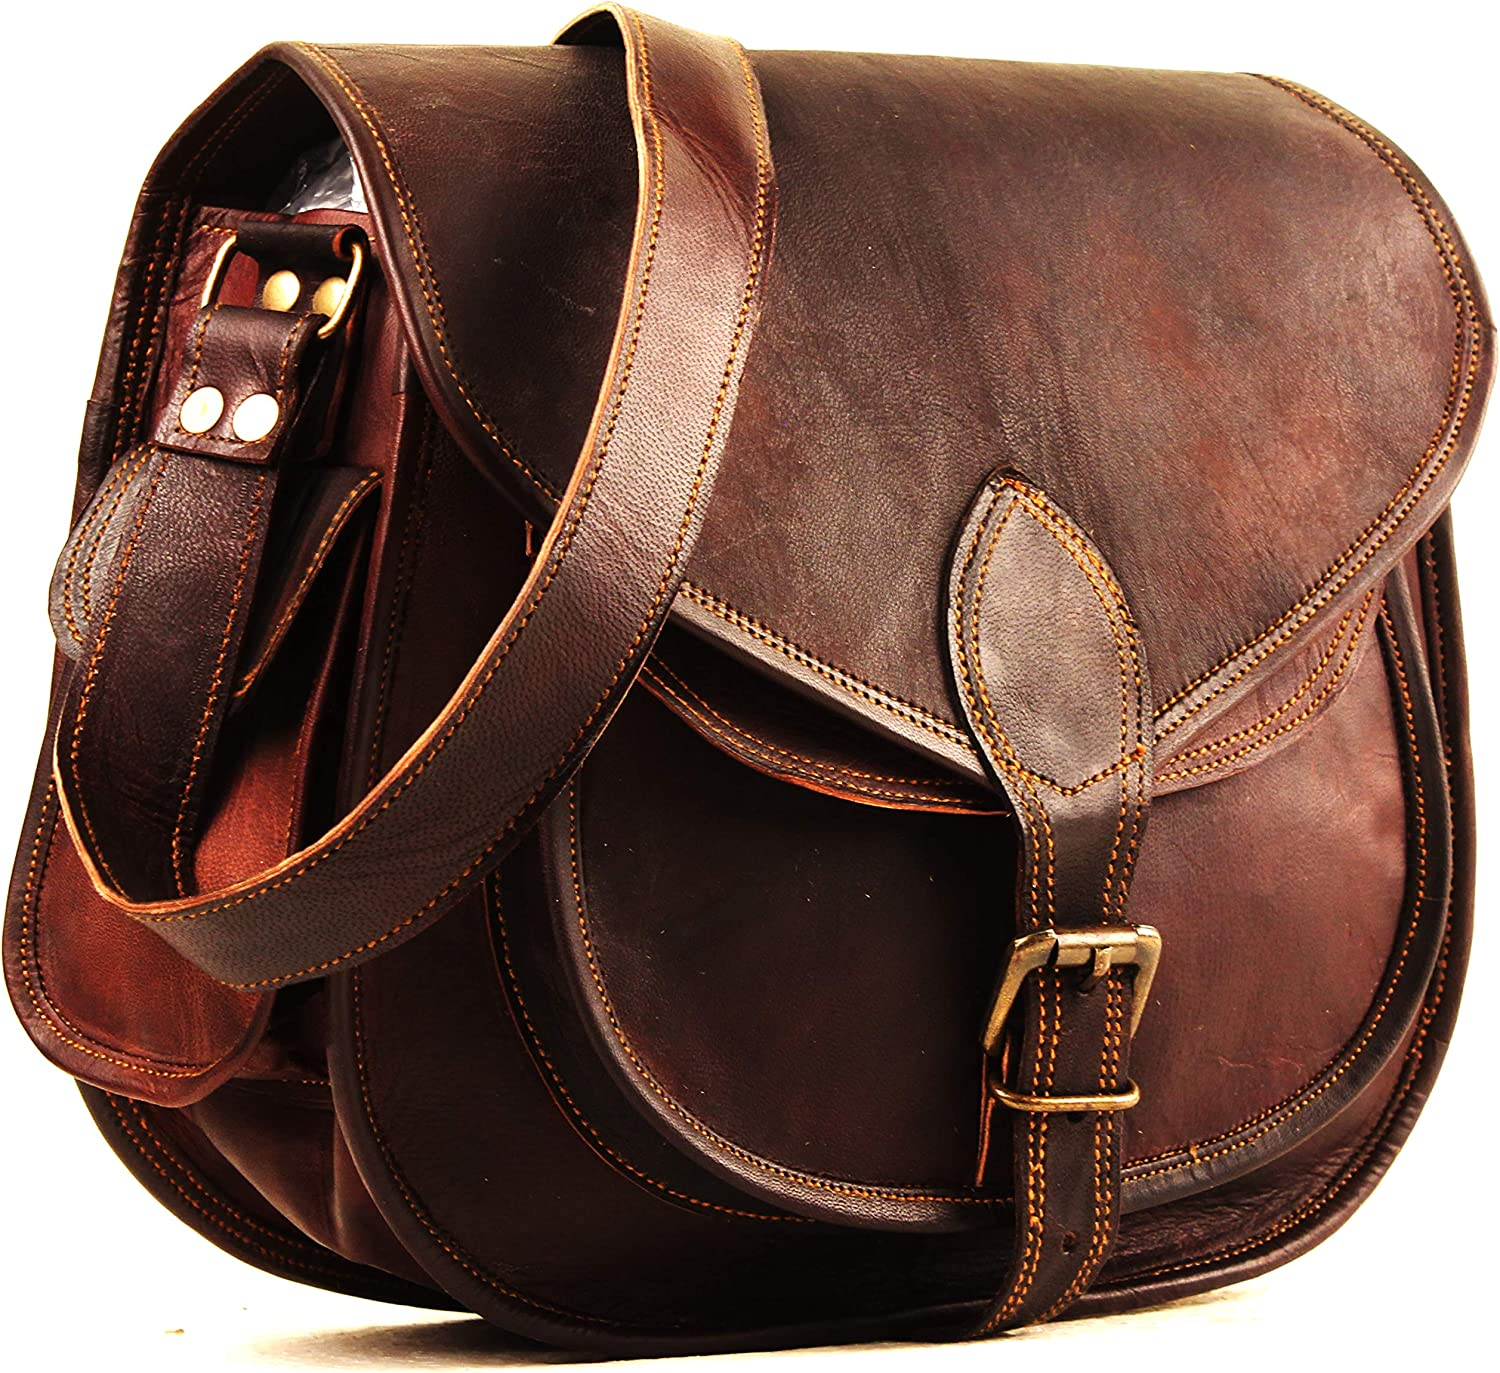 Leather Crossbody Purses Bags For Women   Small Vintage Look Leather Purses And Handbags For Women   Leather Satchel For Women   Diaper Bag for Ladies